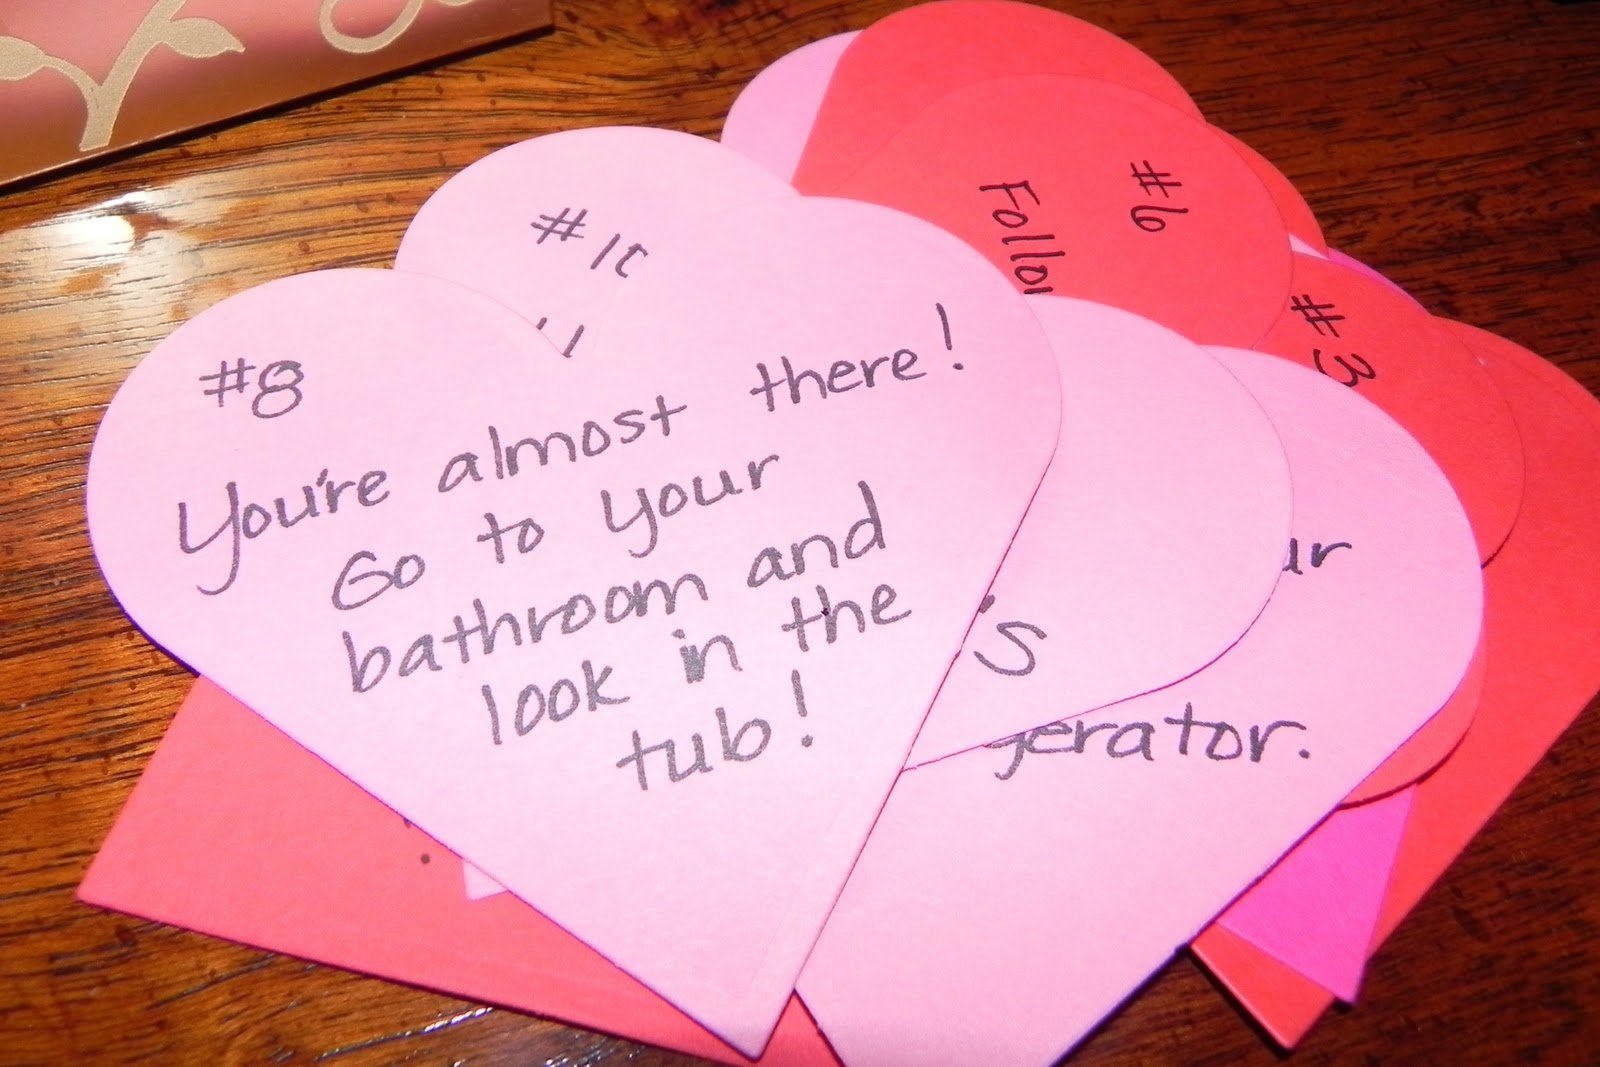 clues for valentine's day scavenger hunt